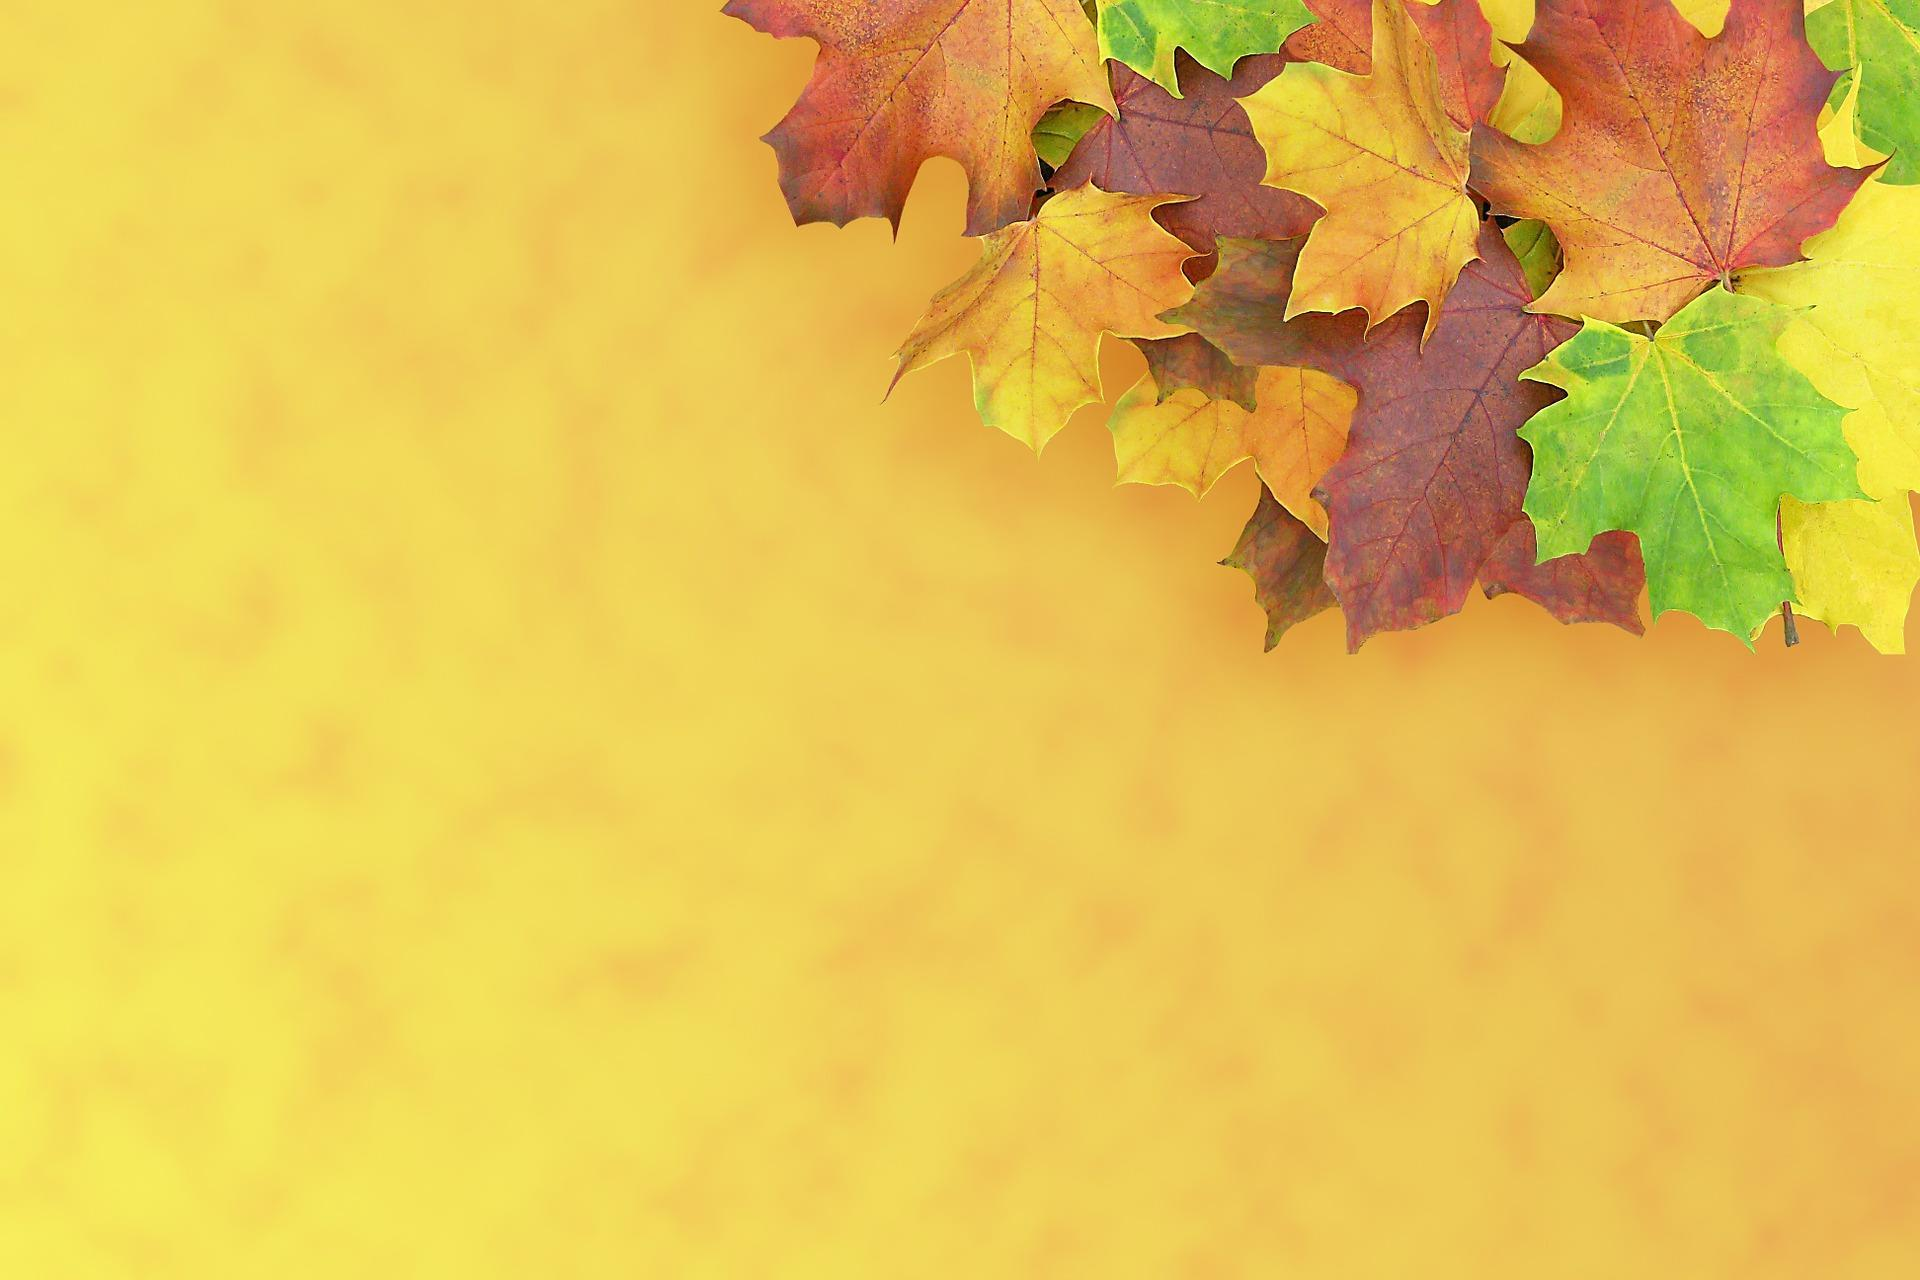 feuilles-automne_wallpapers-free_4